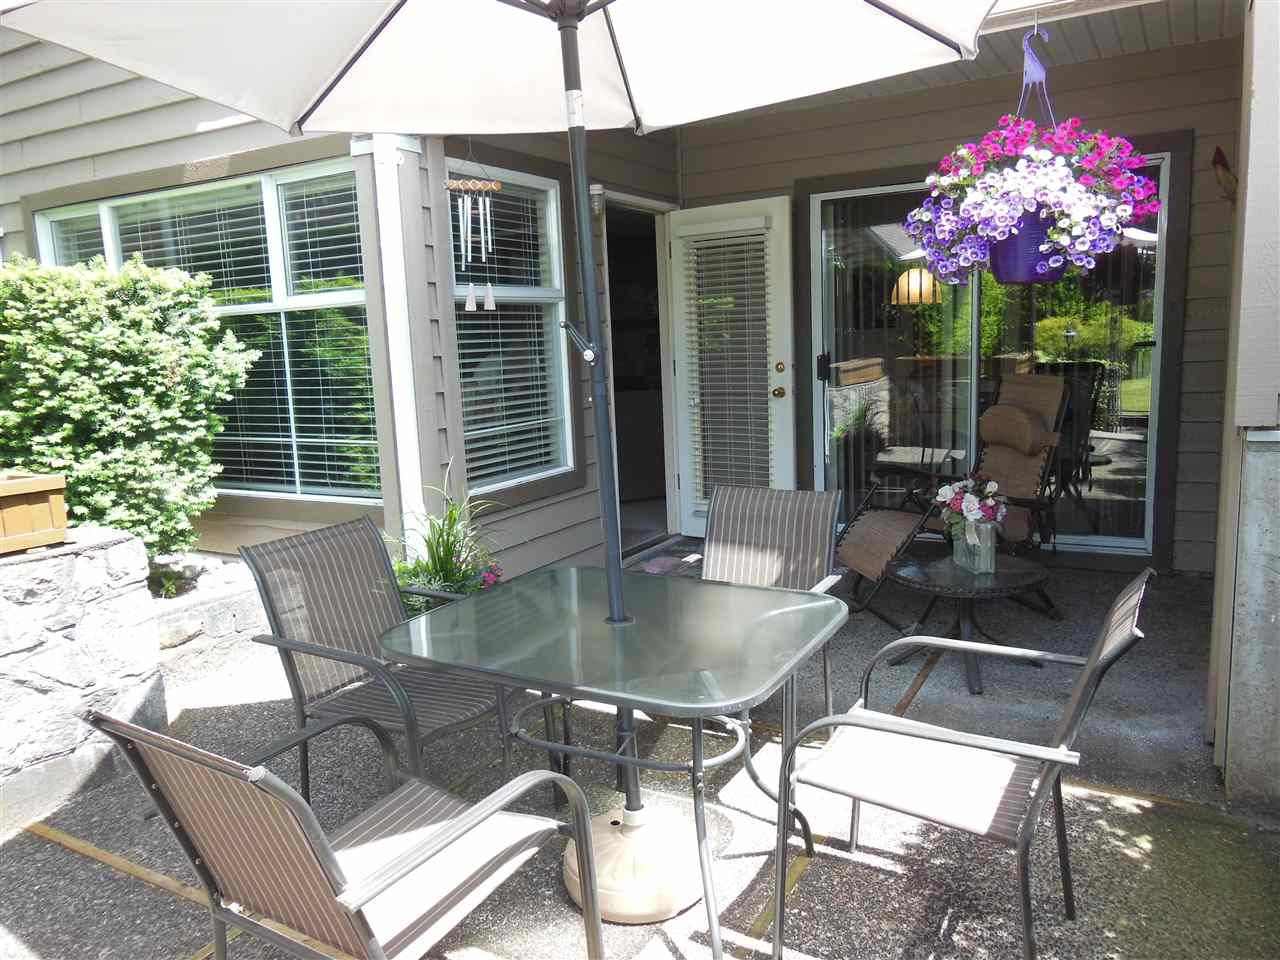 """Main Photo: 309 1000 BOWRON Court in North Vancouver: Roche Point Condo for sale in """"Parkway Terrace"""" : MLS®# R2178474"""